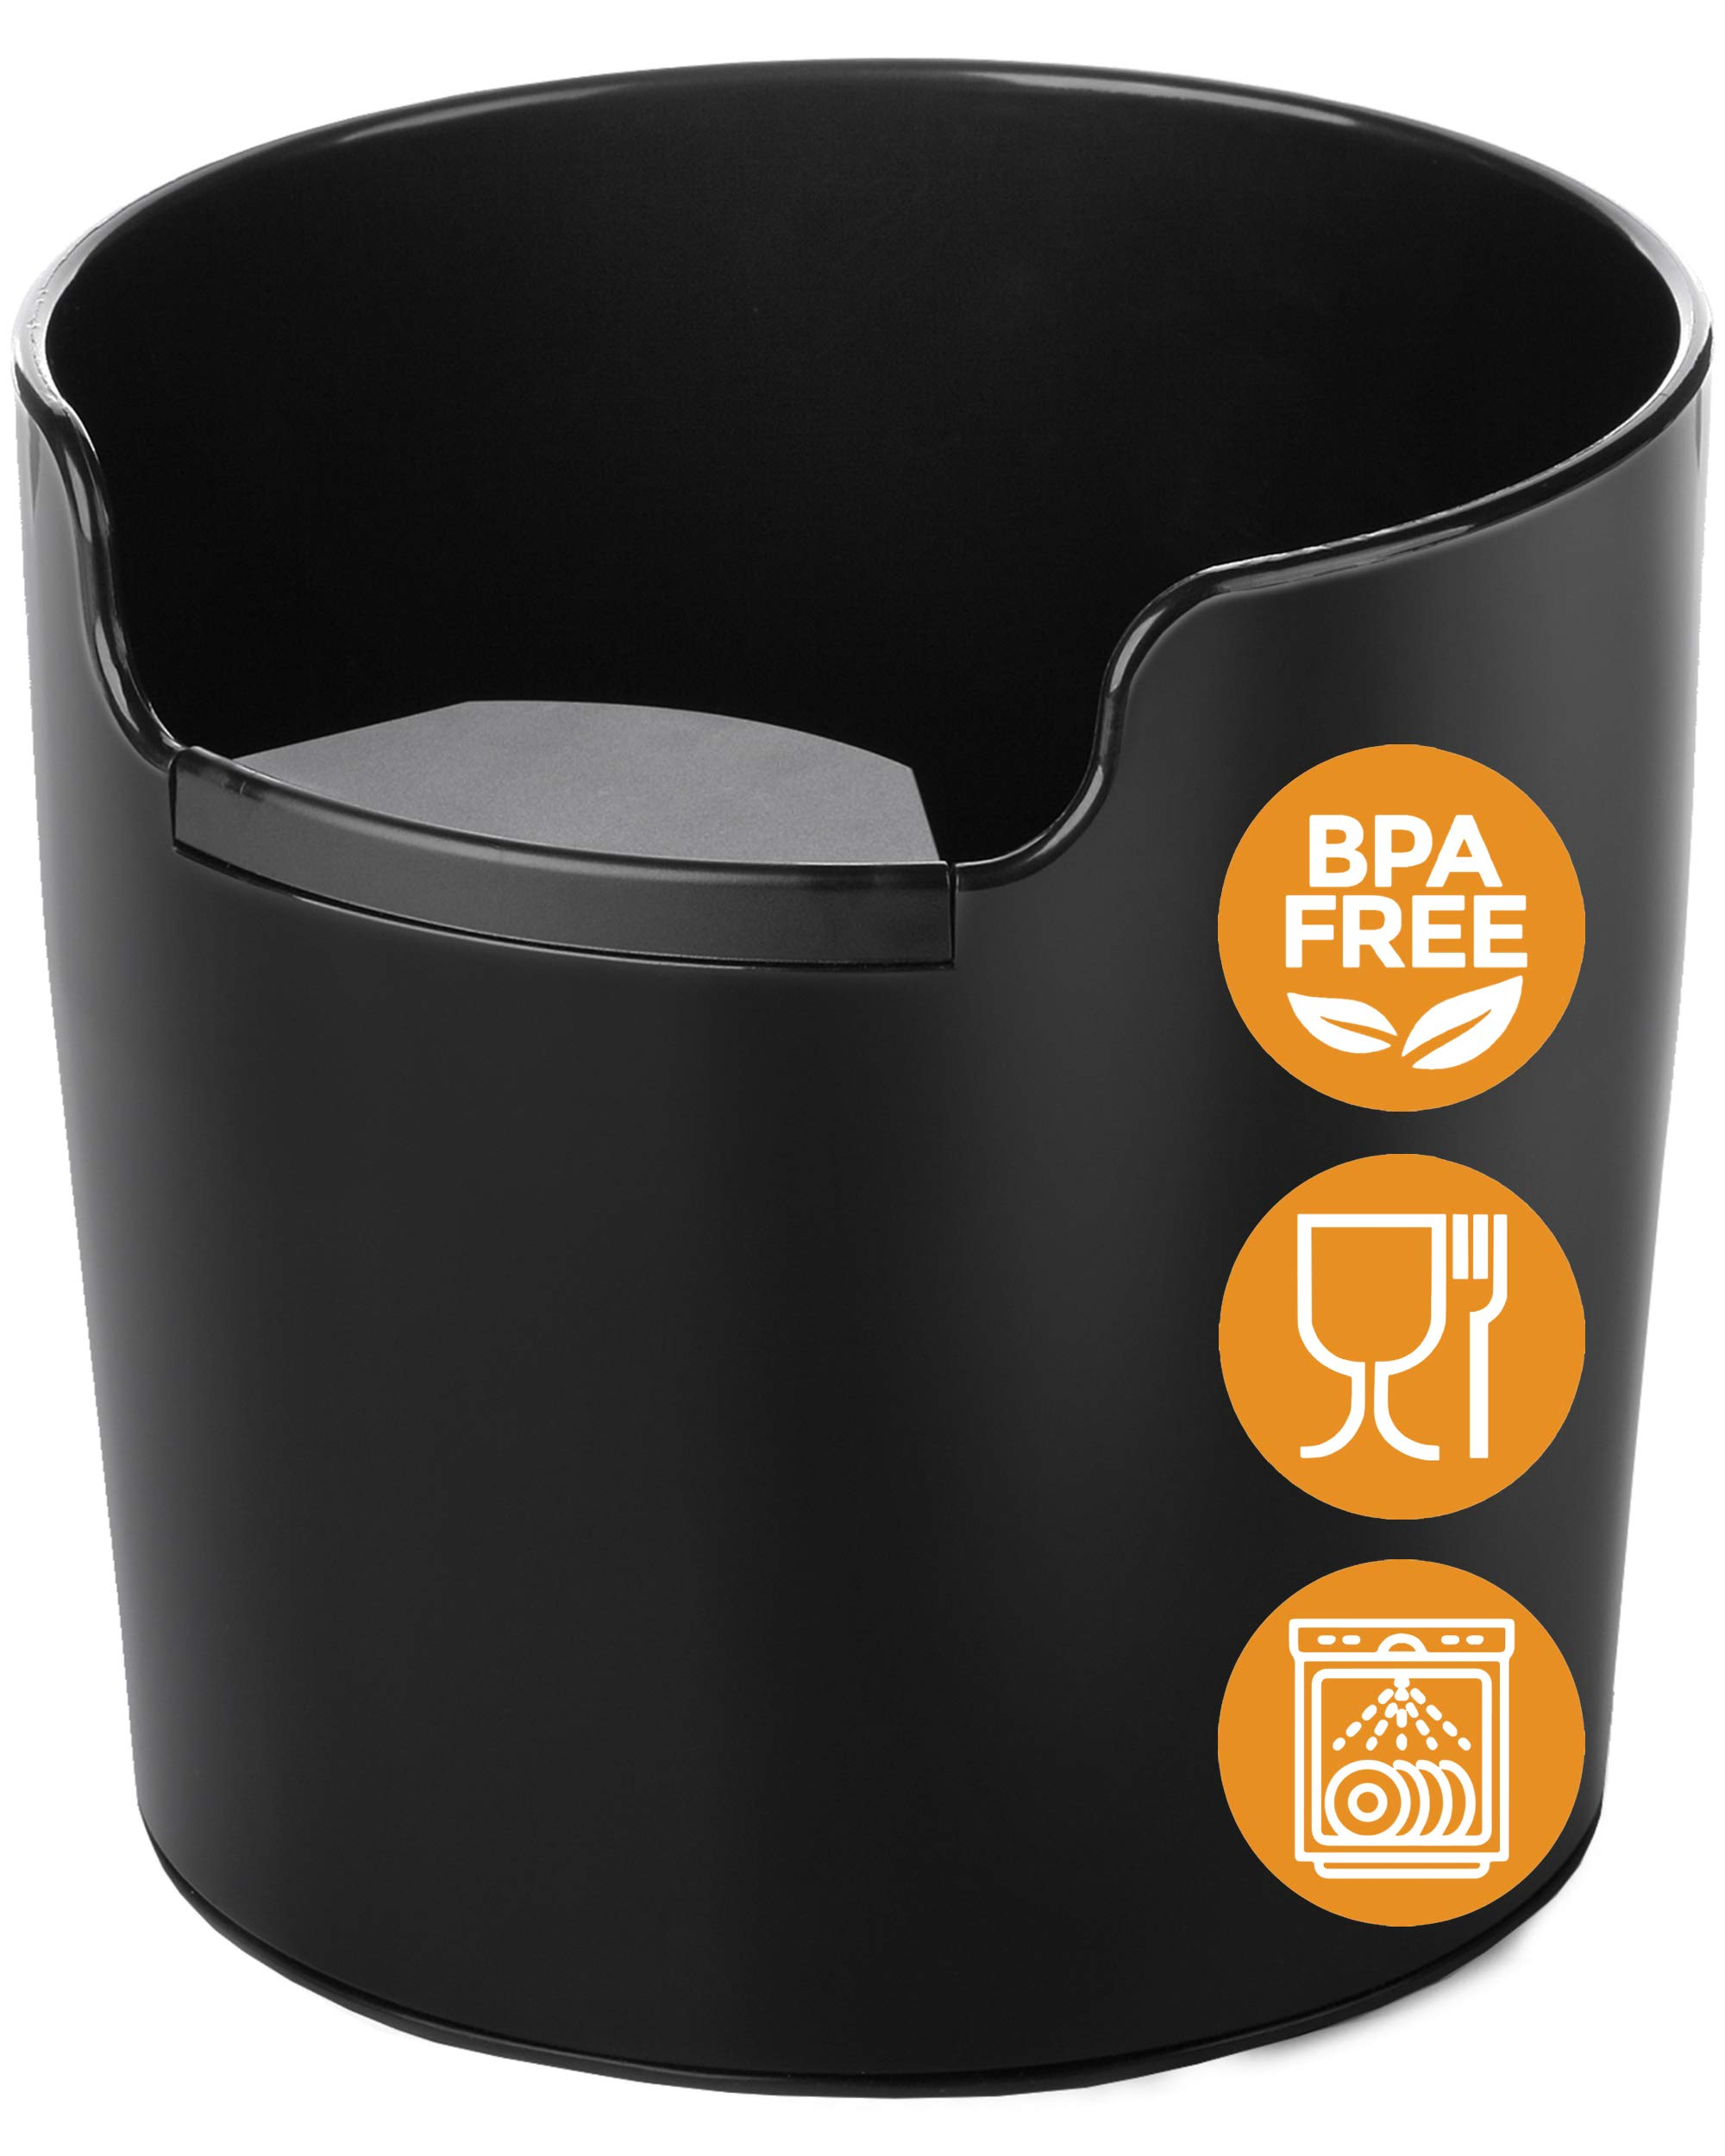 NEW: Homeffect Knock Box with Improved Handling - Innovative Barista Tool -Black - Professional Coffee and Espresso Accessories for Home